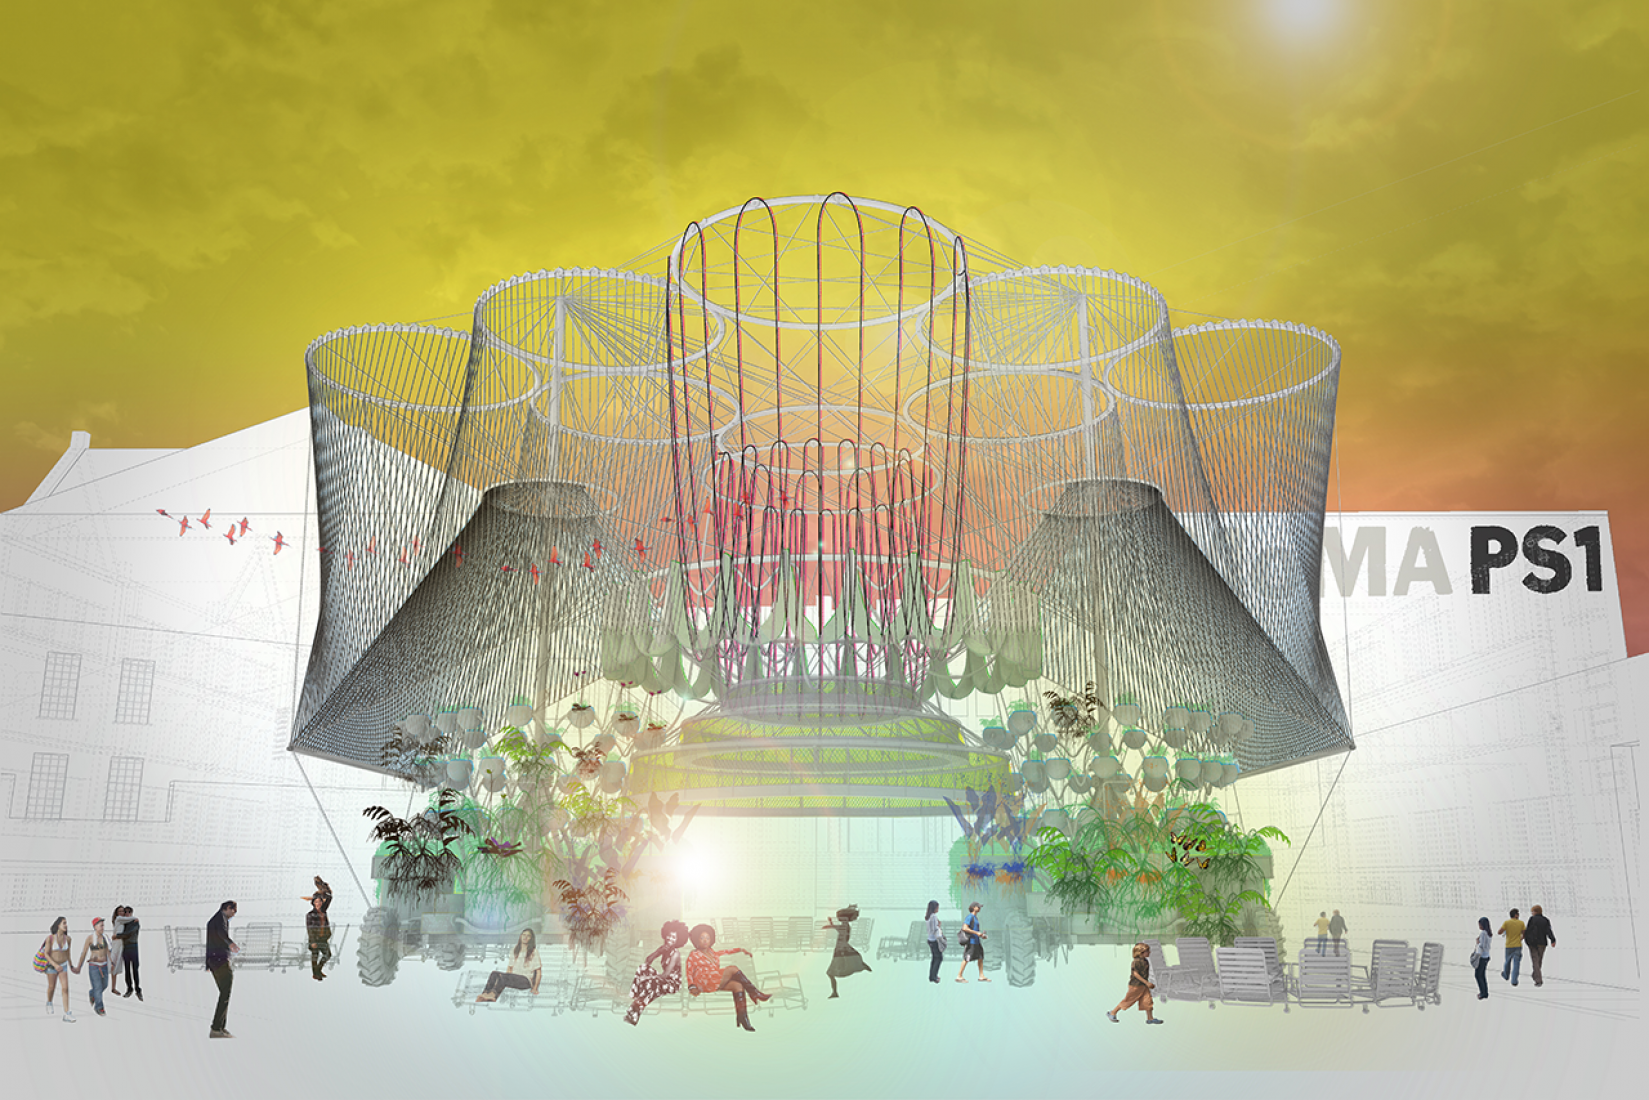 Rendering of Andrés Jaque/Office for Political Innovation's COSMO, winning design of the 2015 Young Architects Program. The Museum of Modern Art and MoMAPS1. Image courtesy of Andrés Jaque/Office for Political Innovation